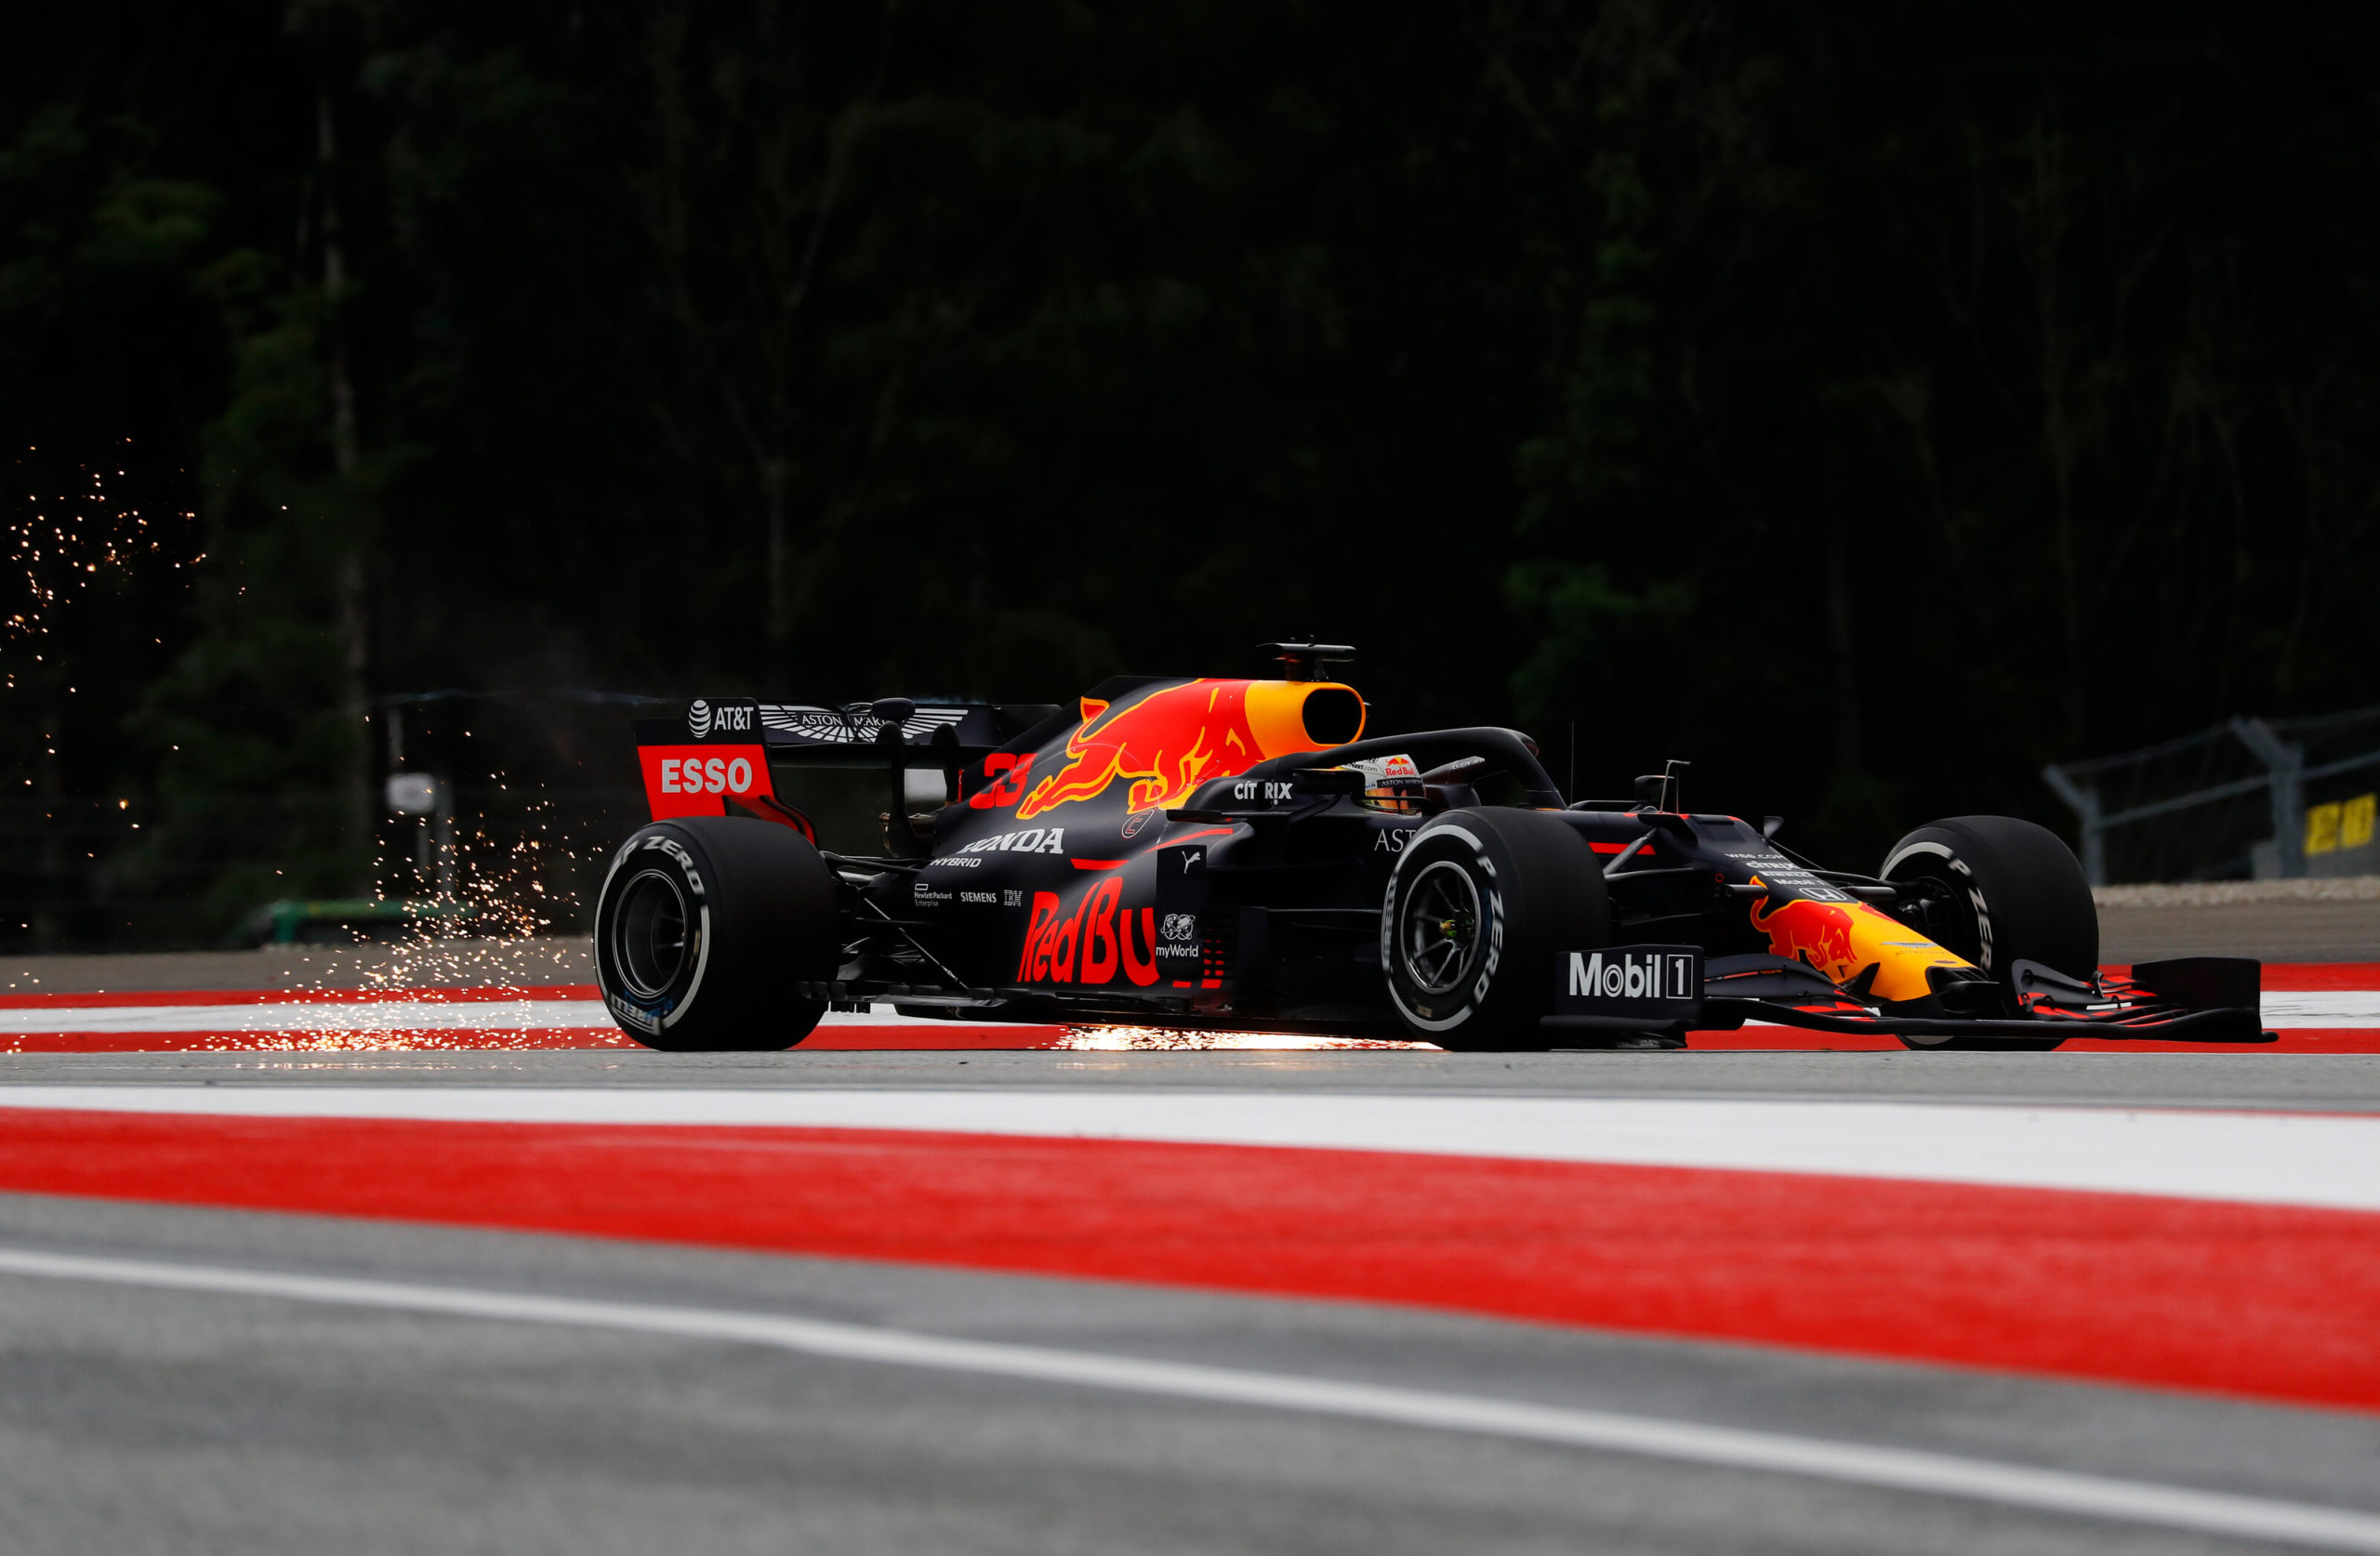 ORF and ServusTV to show free-to-air F1 from 2021